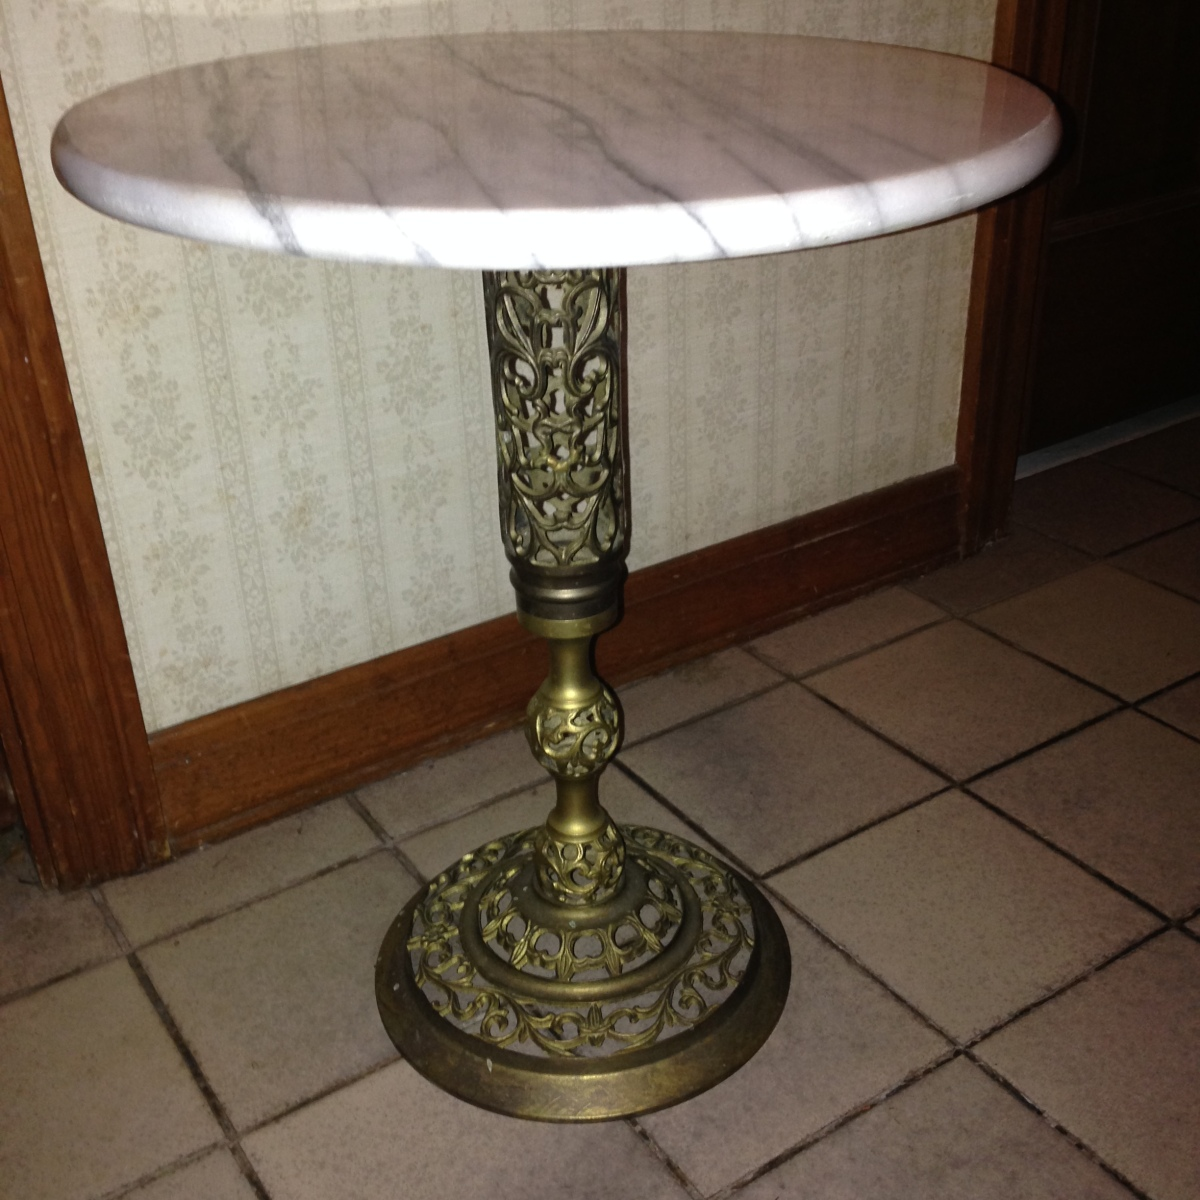 Sold Vintage Round Marble Top Table With Ornate Brass